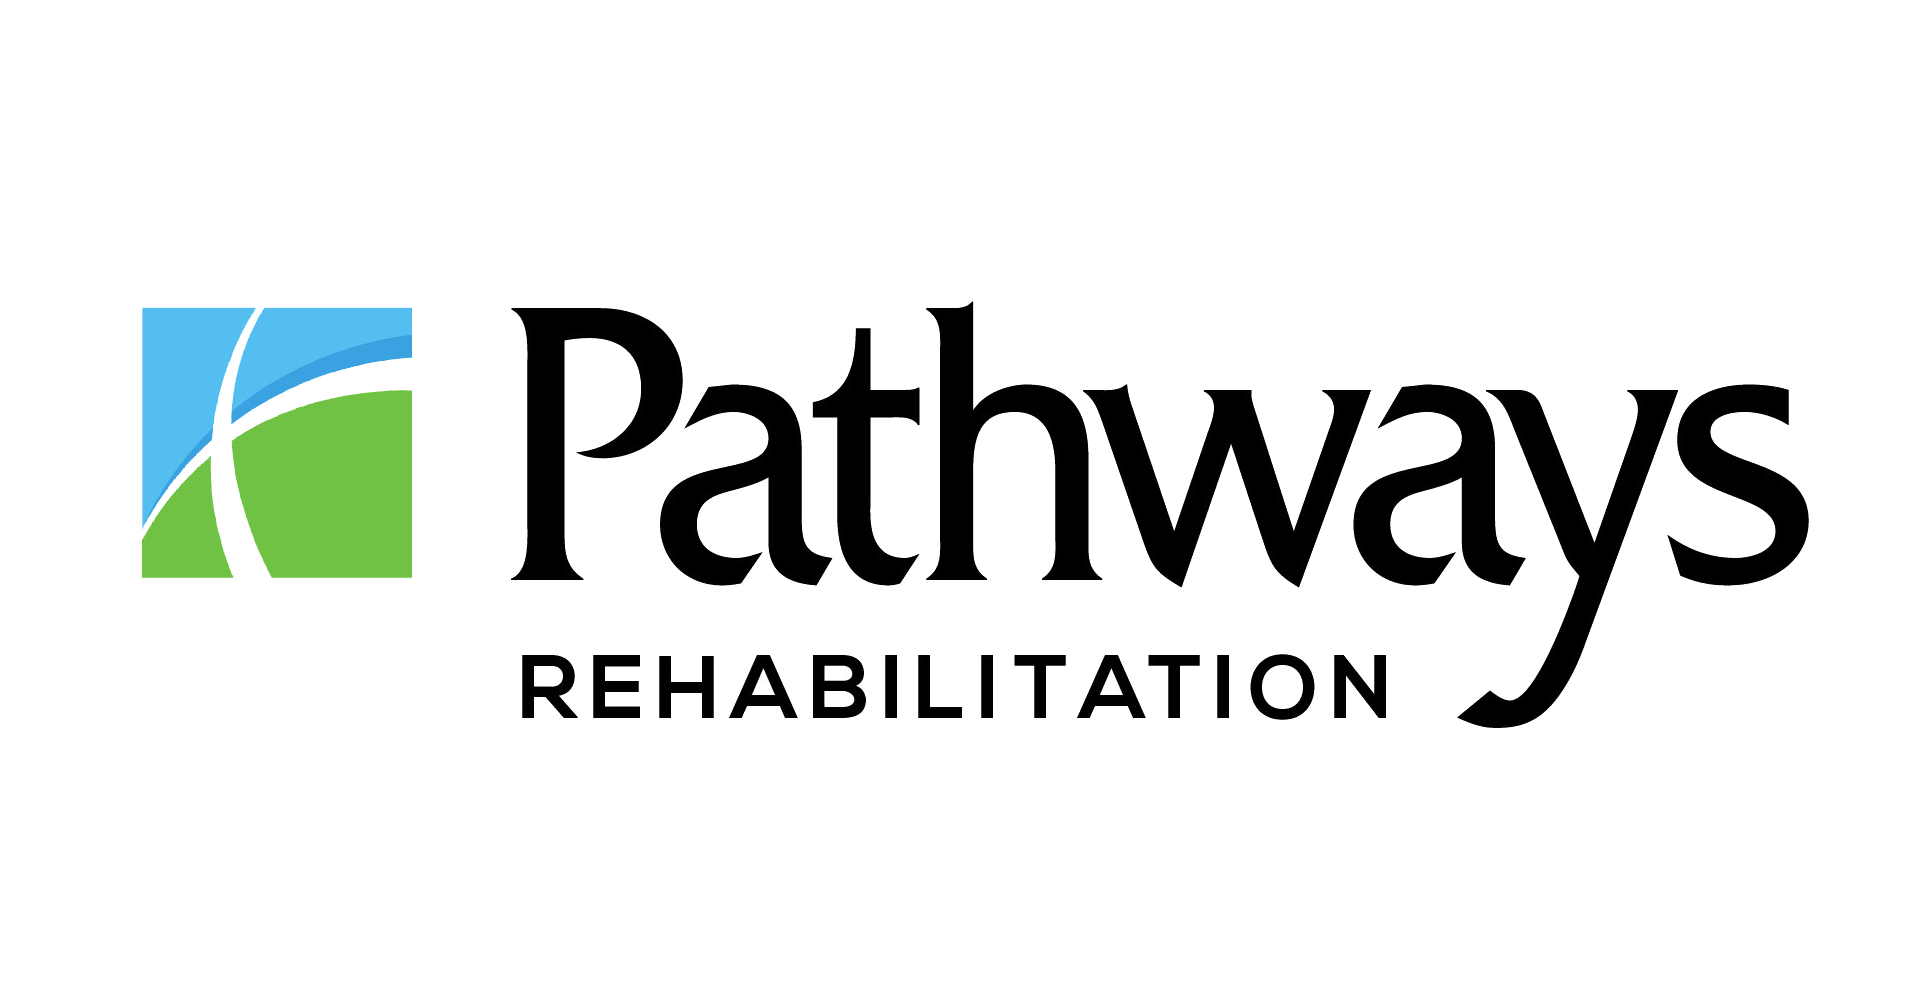 heroin addiction pathways to treatment Heroin addiction treatment programs, such as pathways florida drug rehab, also involve addiction counseling, cognitive-behavioral therapy, drug rehab and heroin support groups heroin rehabilitation usually involves one or more forms of behavioral therapy, such as cognitive-behavioral therapy, addiction counseling, individual or group therapy .